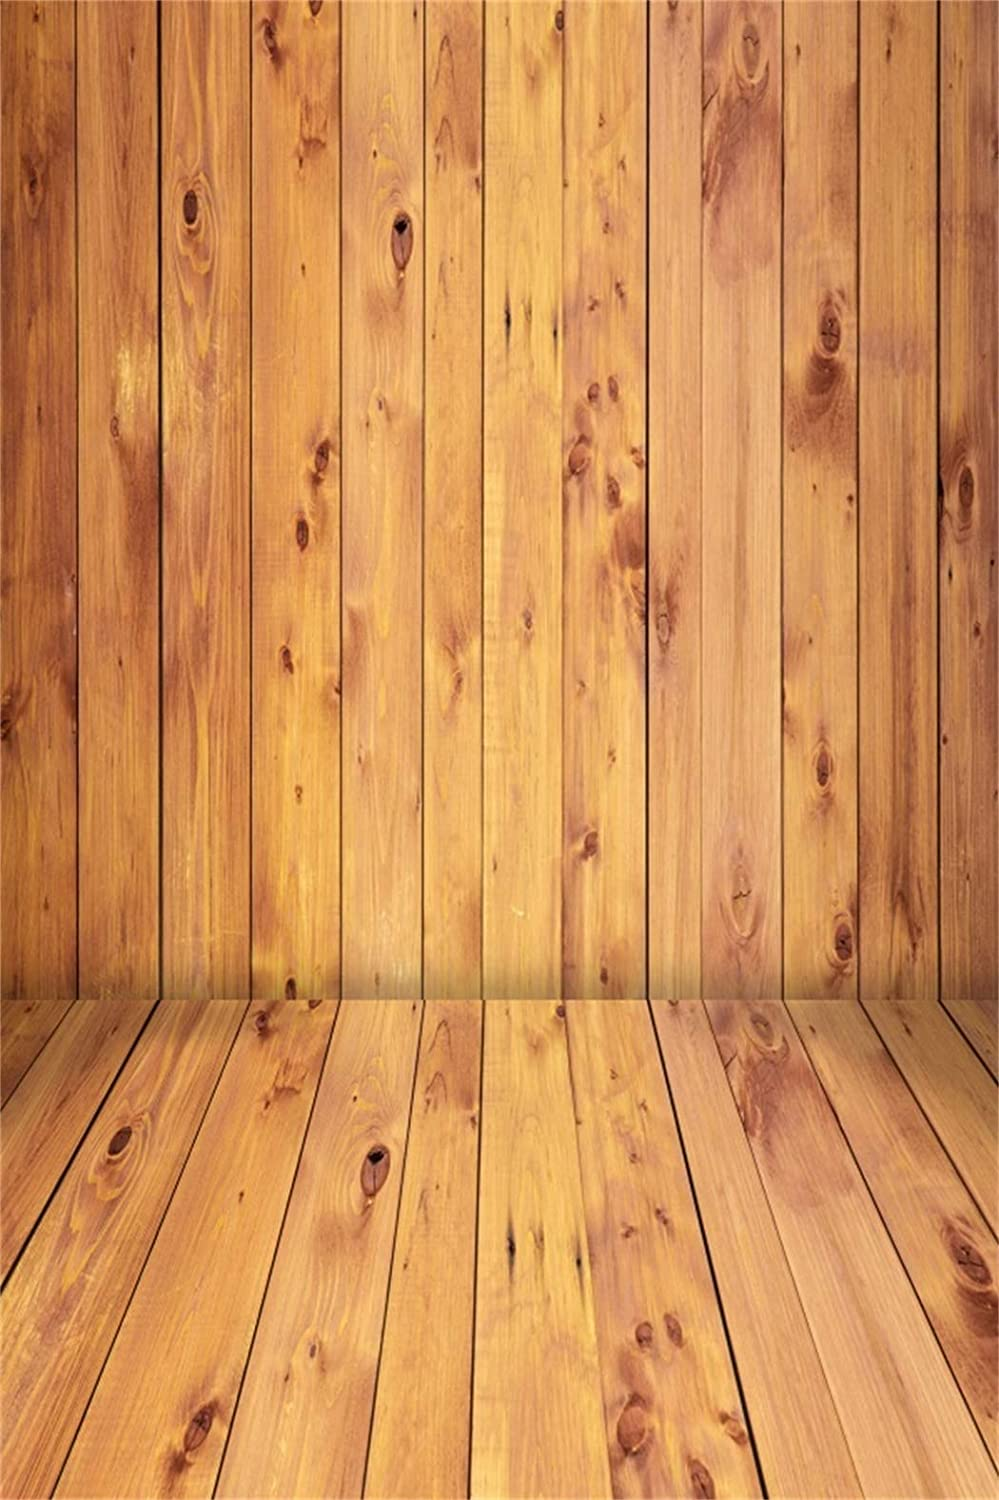 10x15ft Vinyl Wood Photography Backdrops Indoor Outdoor Old Shabby Wooden Wall Rough Plank Wood Texture Grunge Background Kids Adults Portrait Photo Booth Studio Prop Wedding Party Decoration